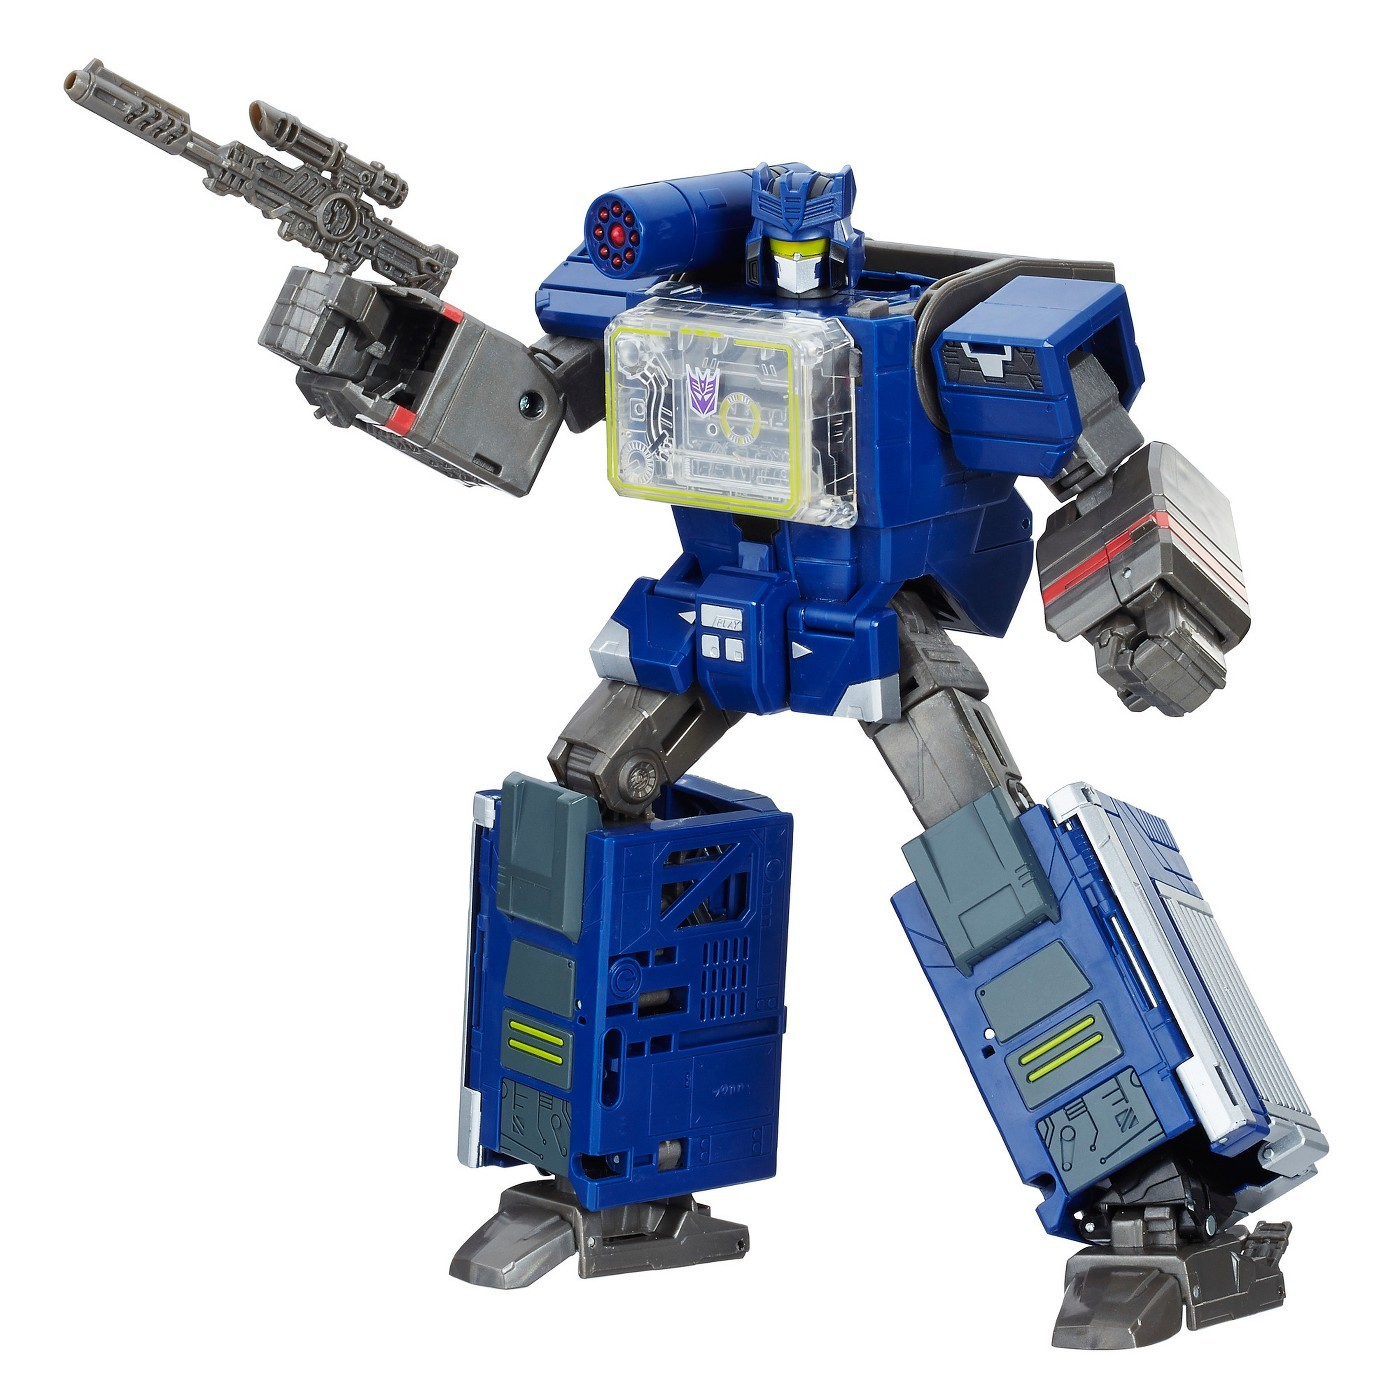 Greatest Hits Soundwave, Cassettes, Tiny Turbo Changers